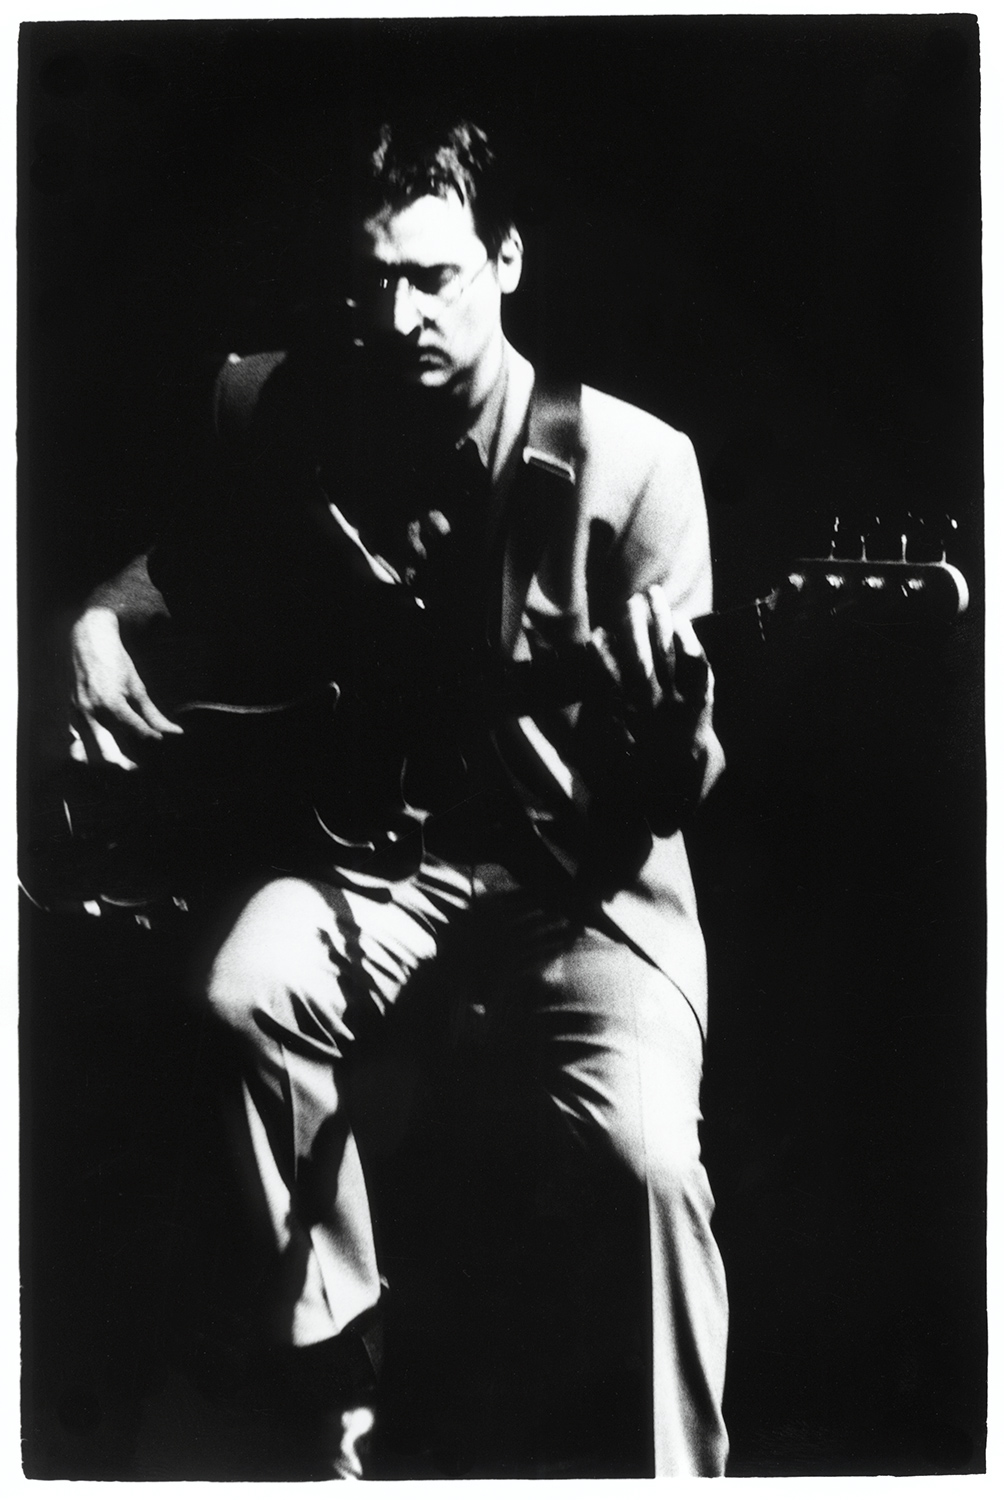 Tindersticks by Laurent Orseau - Beaubourg - Paris, France - 2001-05-19 #6